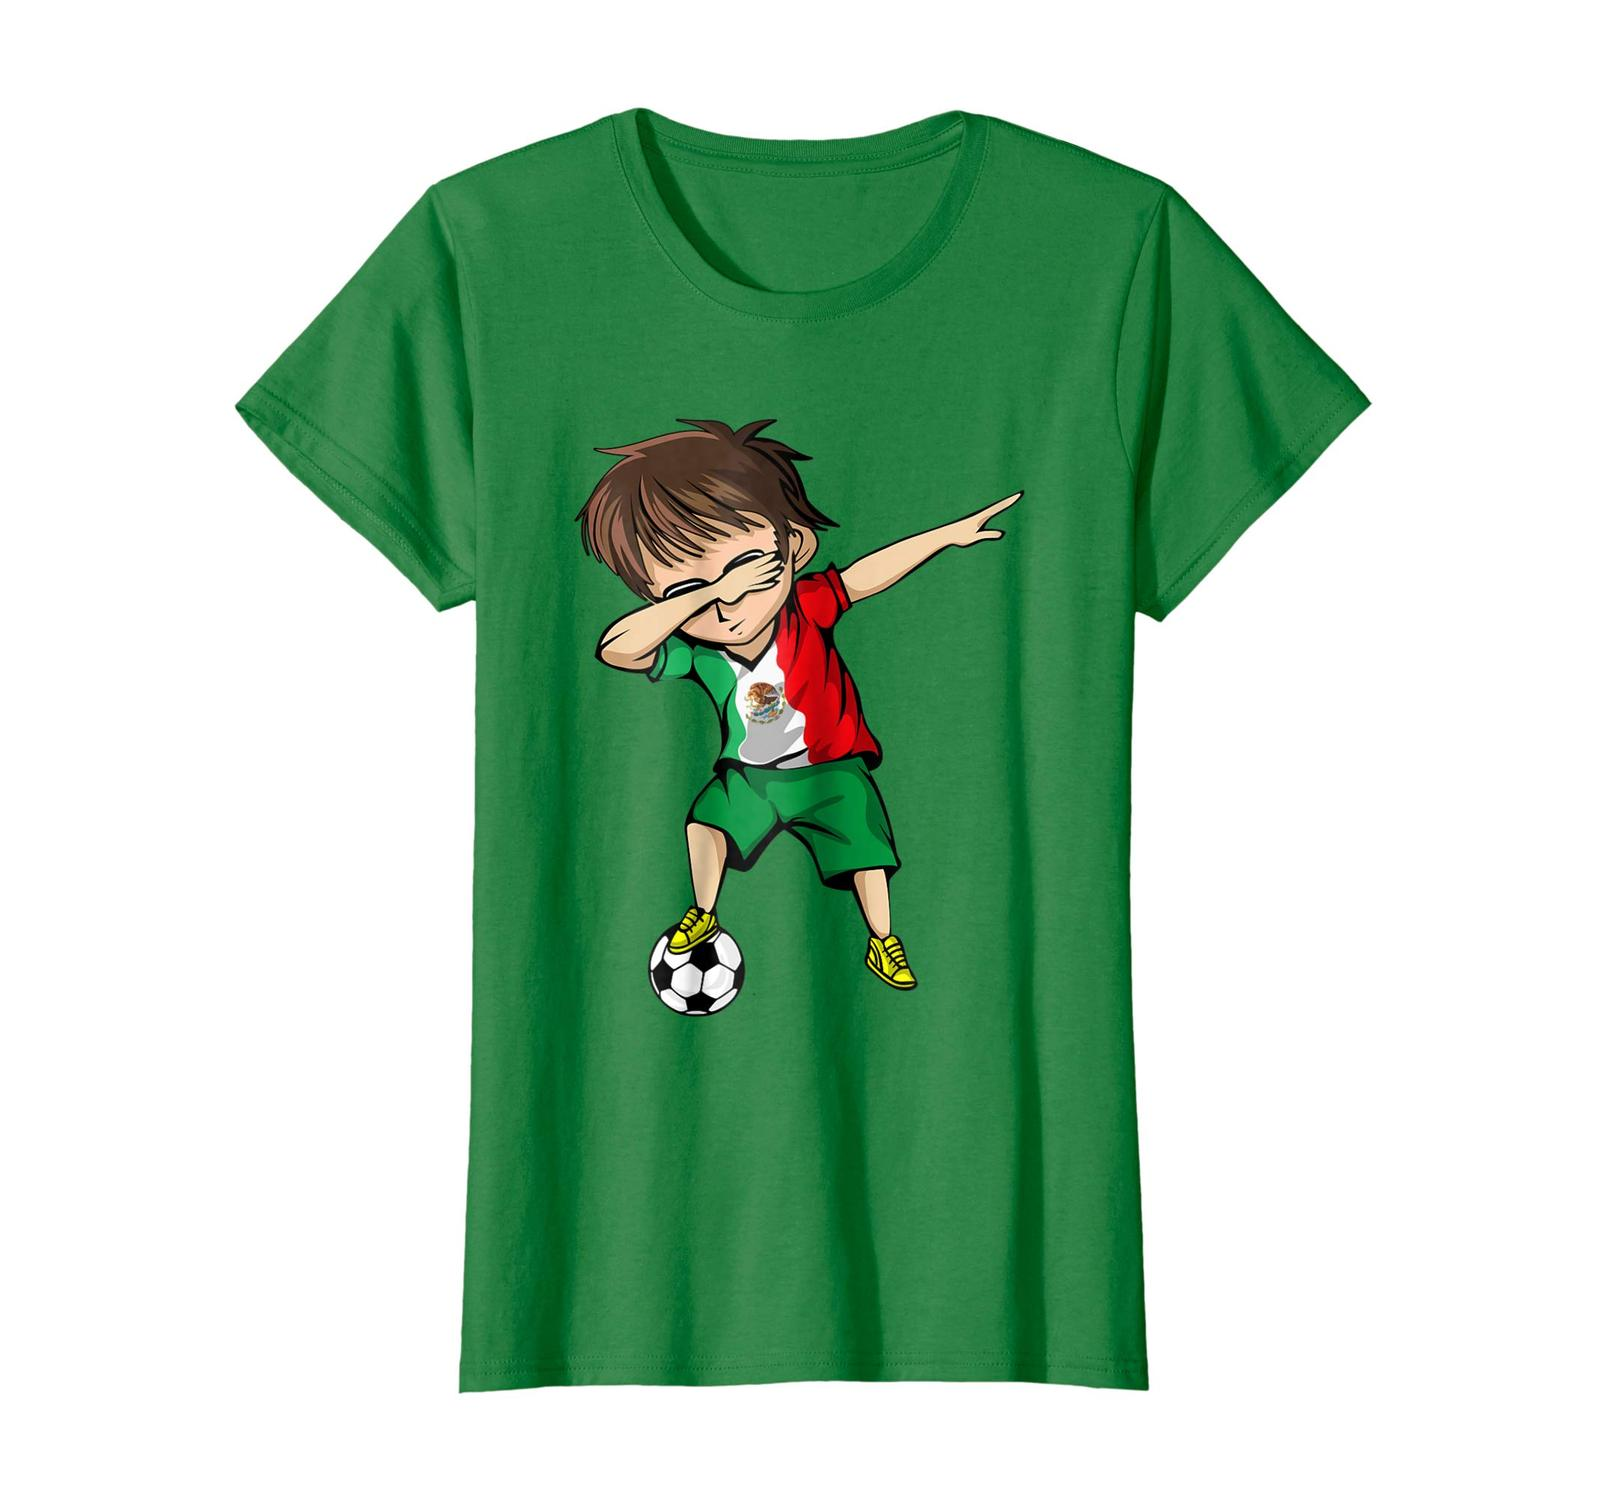 Brother Shirts - Dabbing Soccer Boy Mexico Jersey T-Shirt - Mexican Football Wow